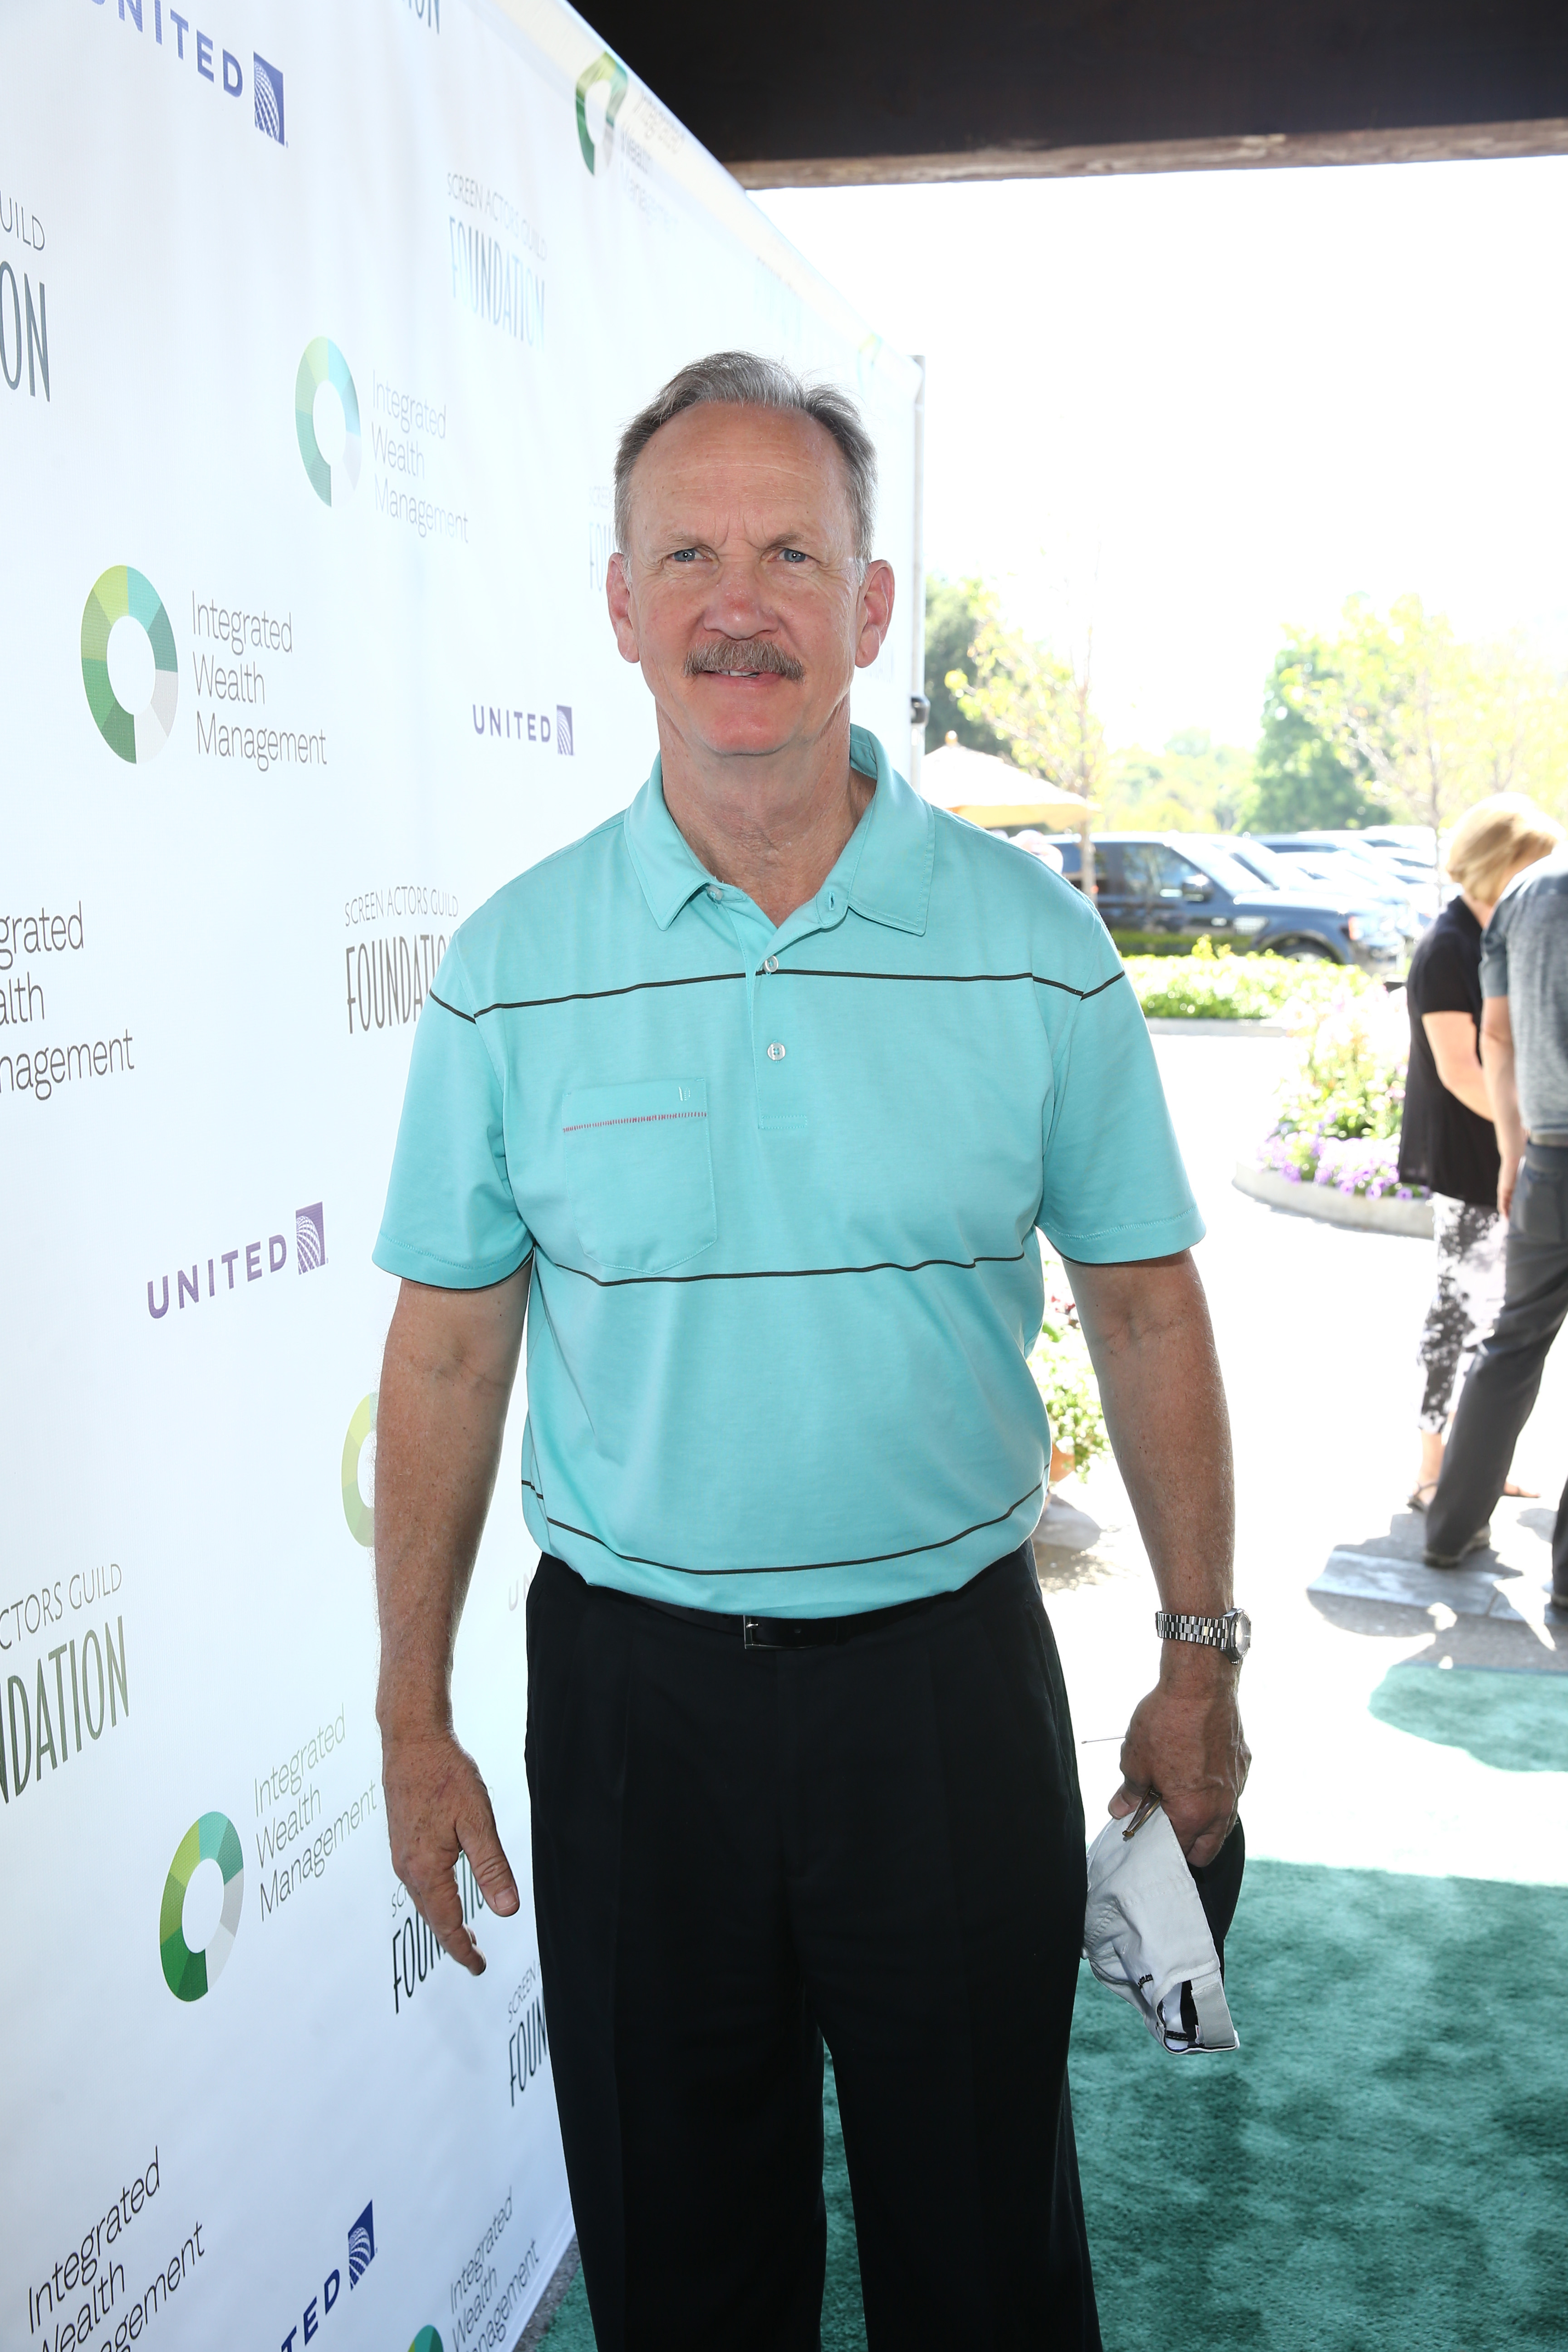 Michael O'Niell attends The Screen Actors Guild Foundation's 6th Annual Los Angeles Golf Classic on June 8, 2015 in Burbank, California. (Photo by Mark Davis/Getty Images for The Screen Actors Guild Foundation)